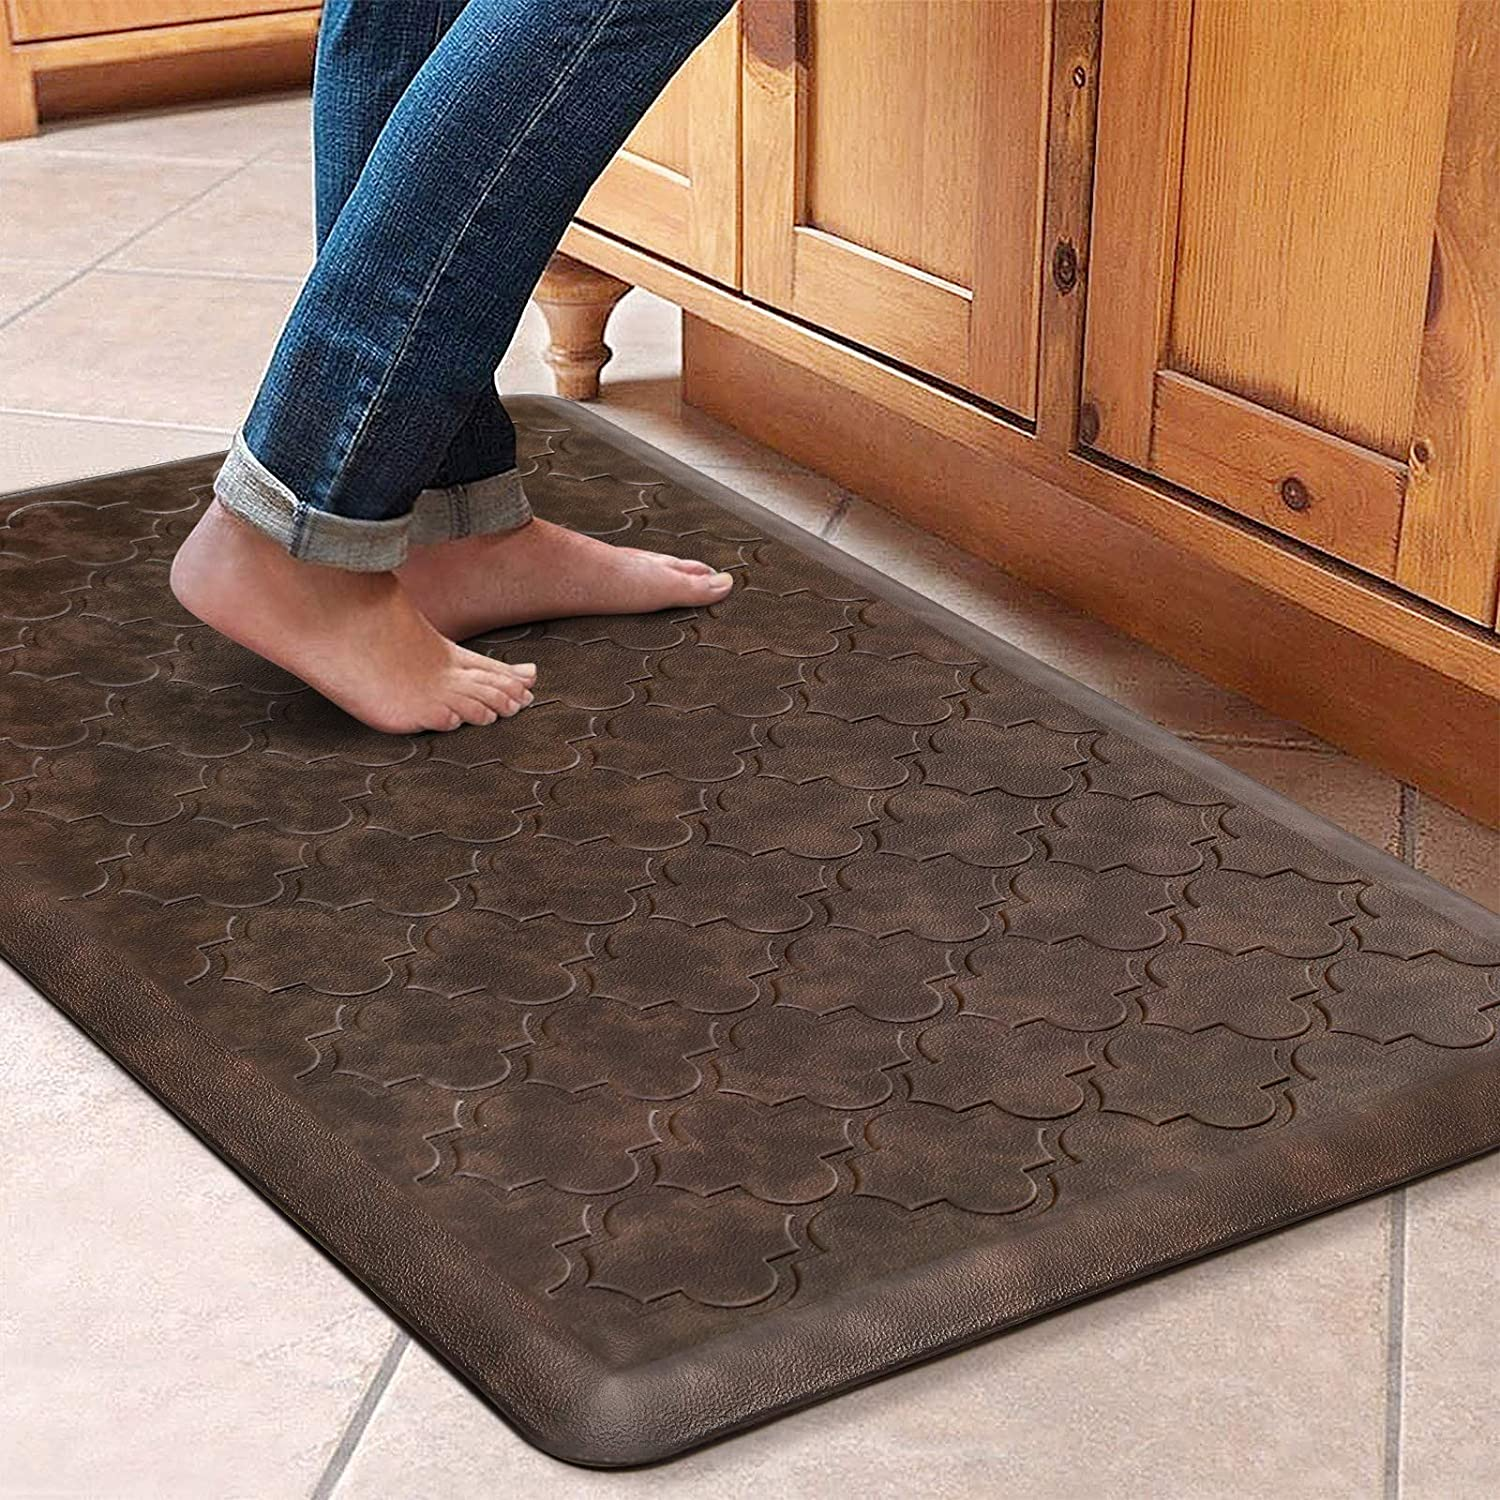 """WiseLife Kitchen Mat Cushioned Anti Fatigue Floor Mat,17.3""""x28"""",Thick Non Slip Waterproof Kitchen Rugs and Mats,Heavy Duty PVC Foam Standing Mat for Kitchen,Floor,Home,Office,Desk,Sink,Laundry,Brown"""